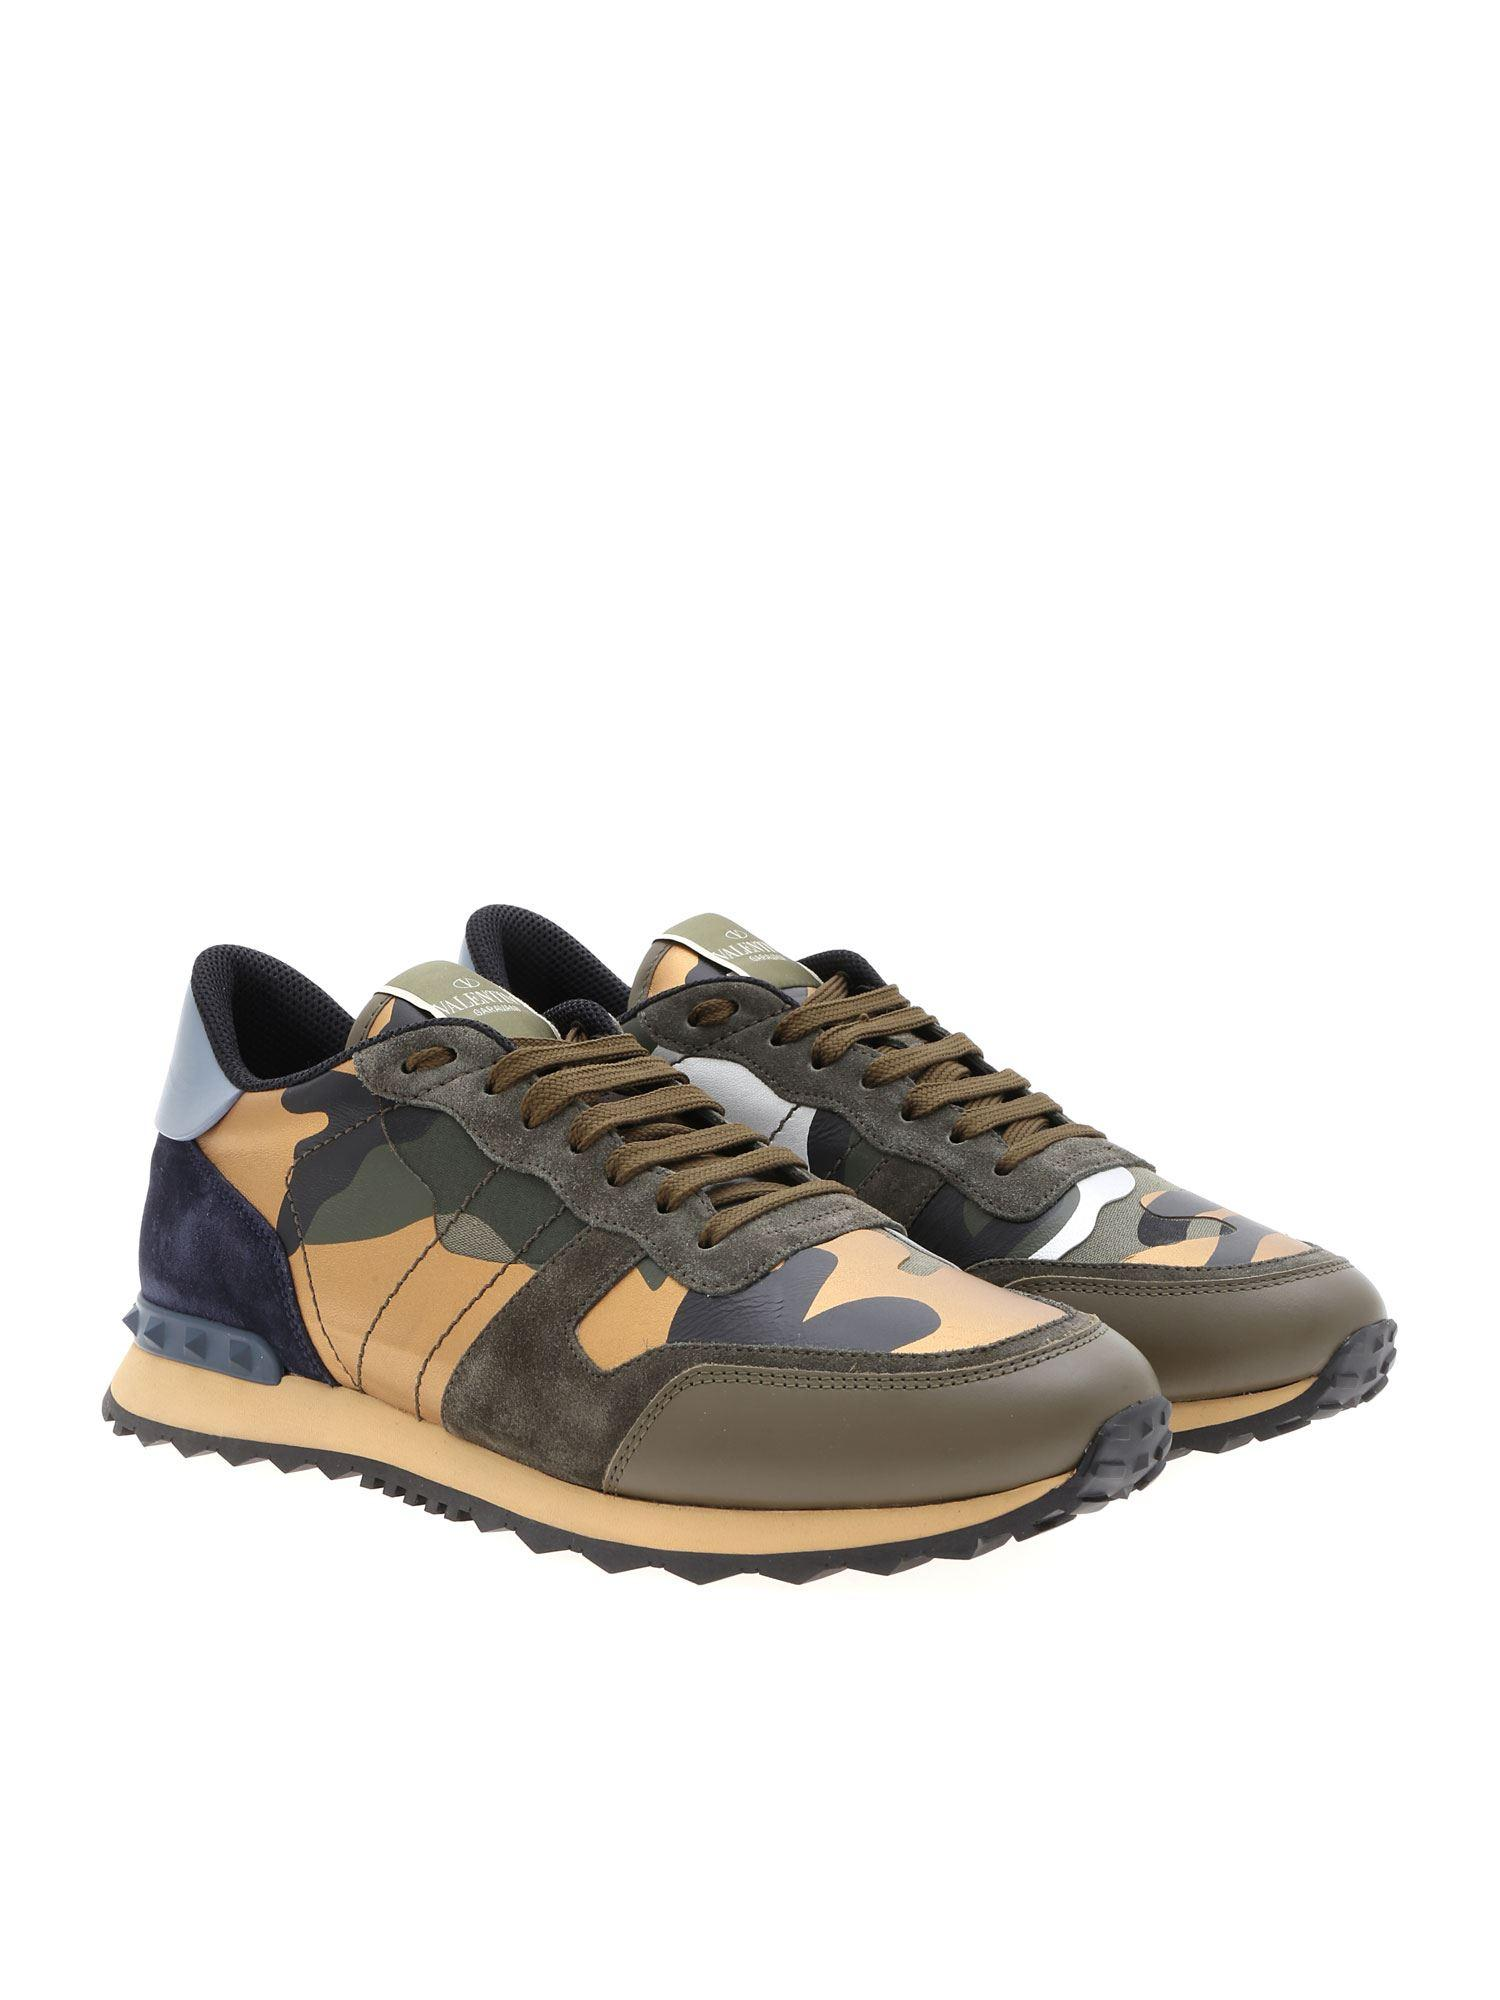 db14110ece836 Valentino Rockrunner Camouflage Sneakers for Men - Lyst